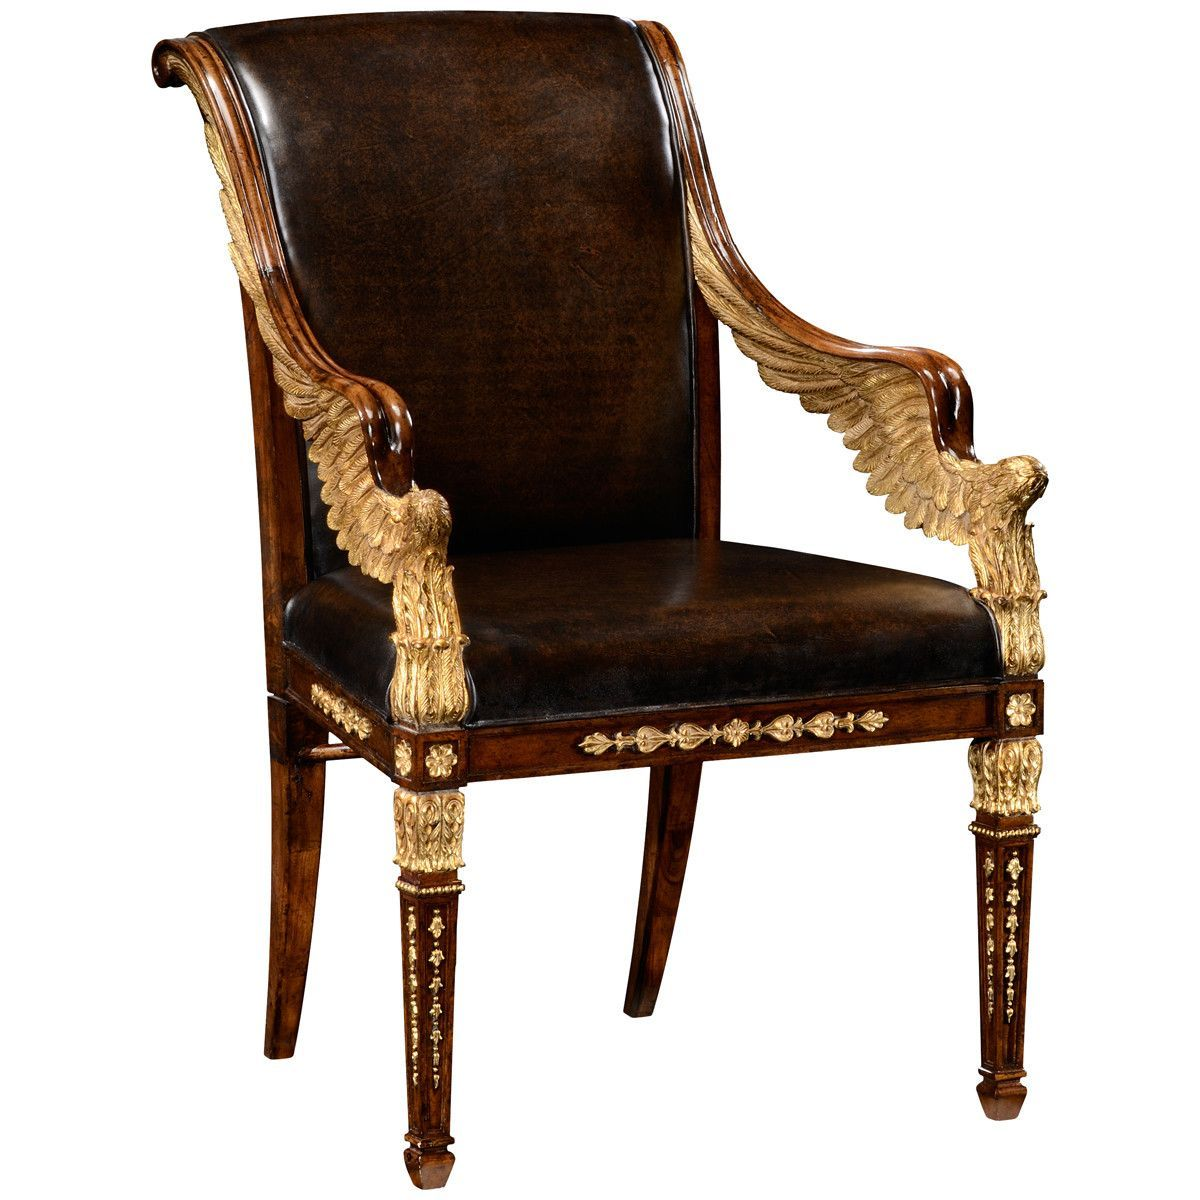 Impressive Walnut And Gilt Empire Style Armchair With